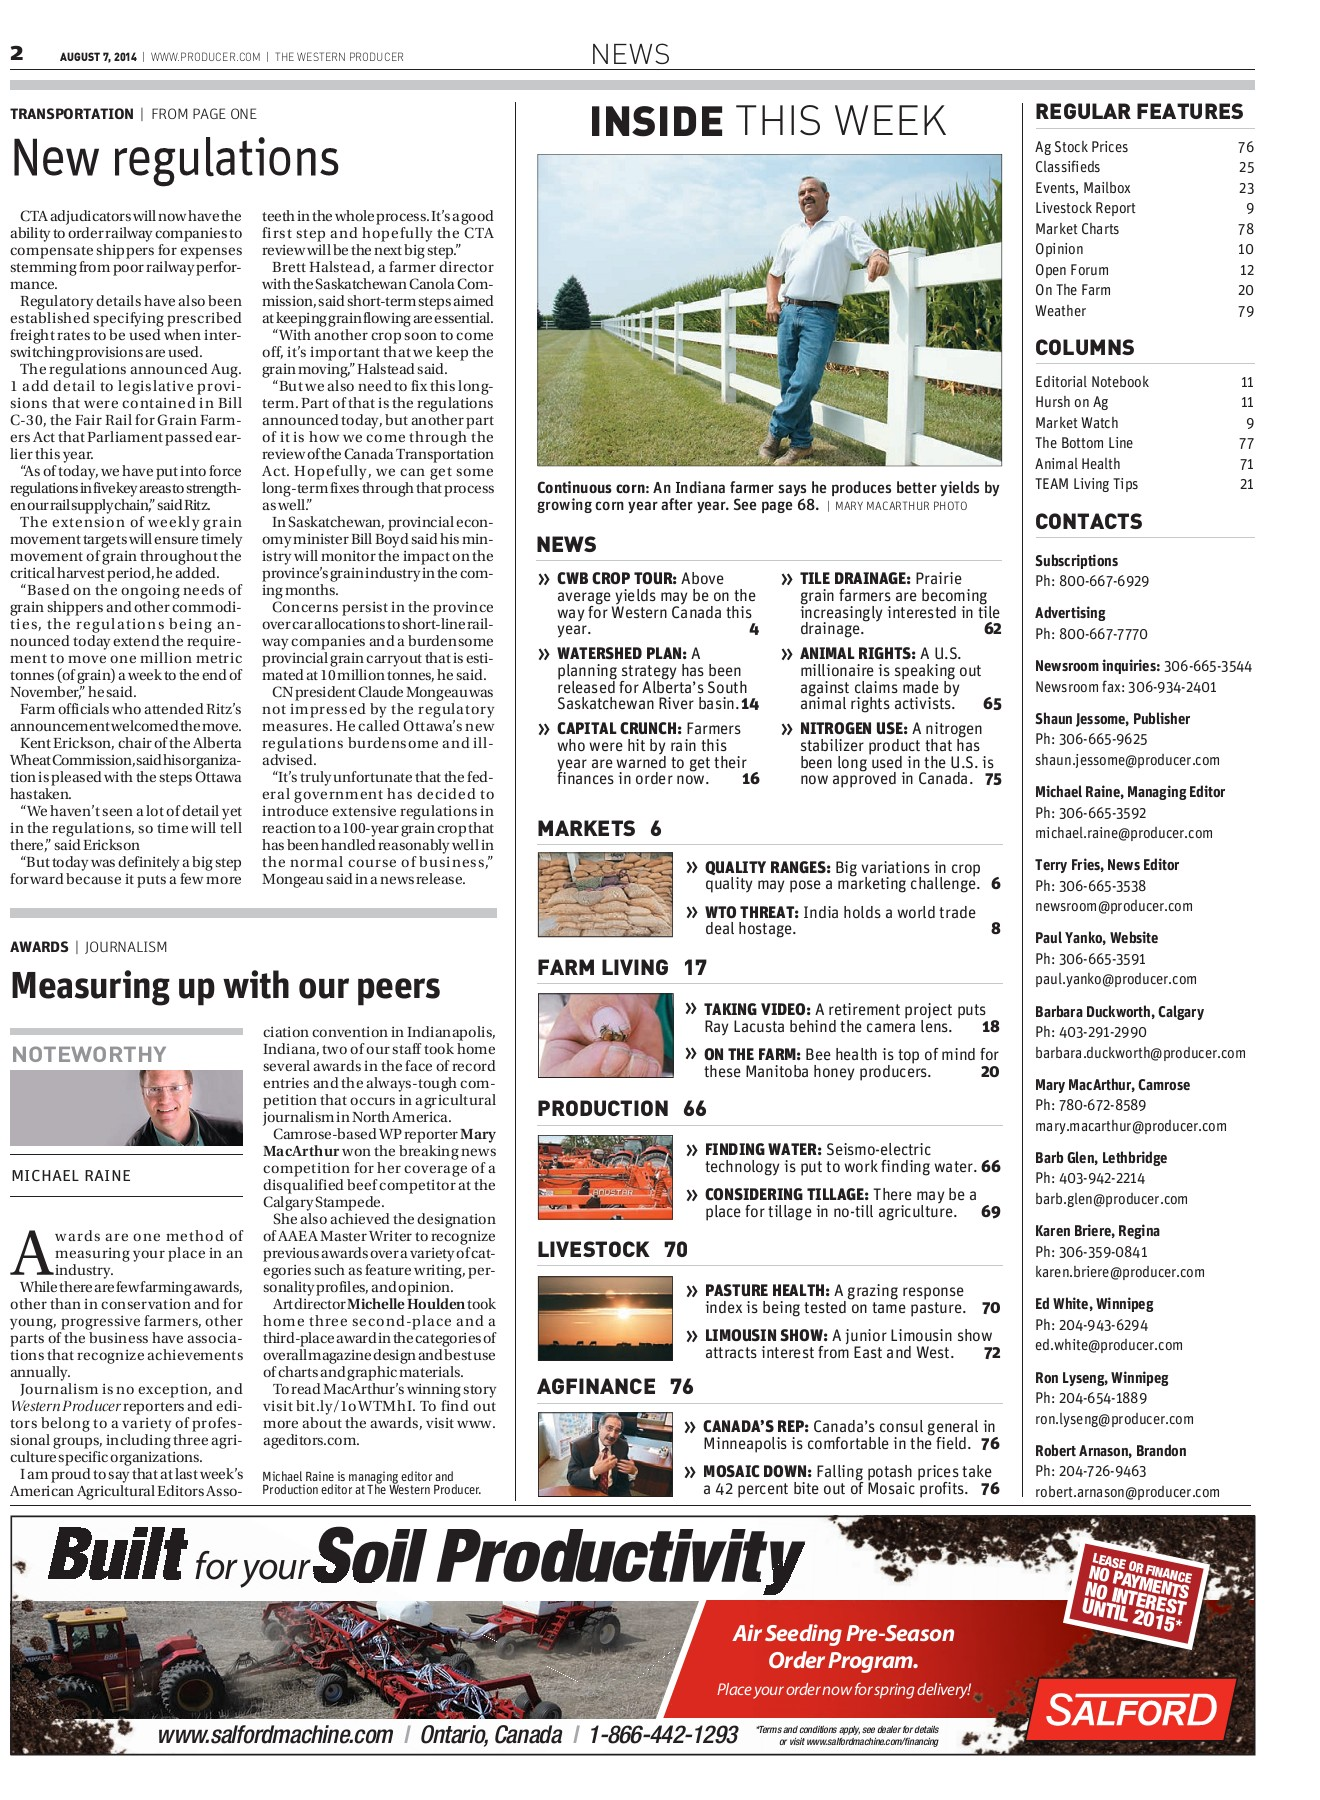 Western Producer 2014-08-07 Pages 51 - 80 - Text Version